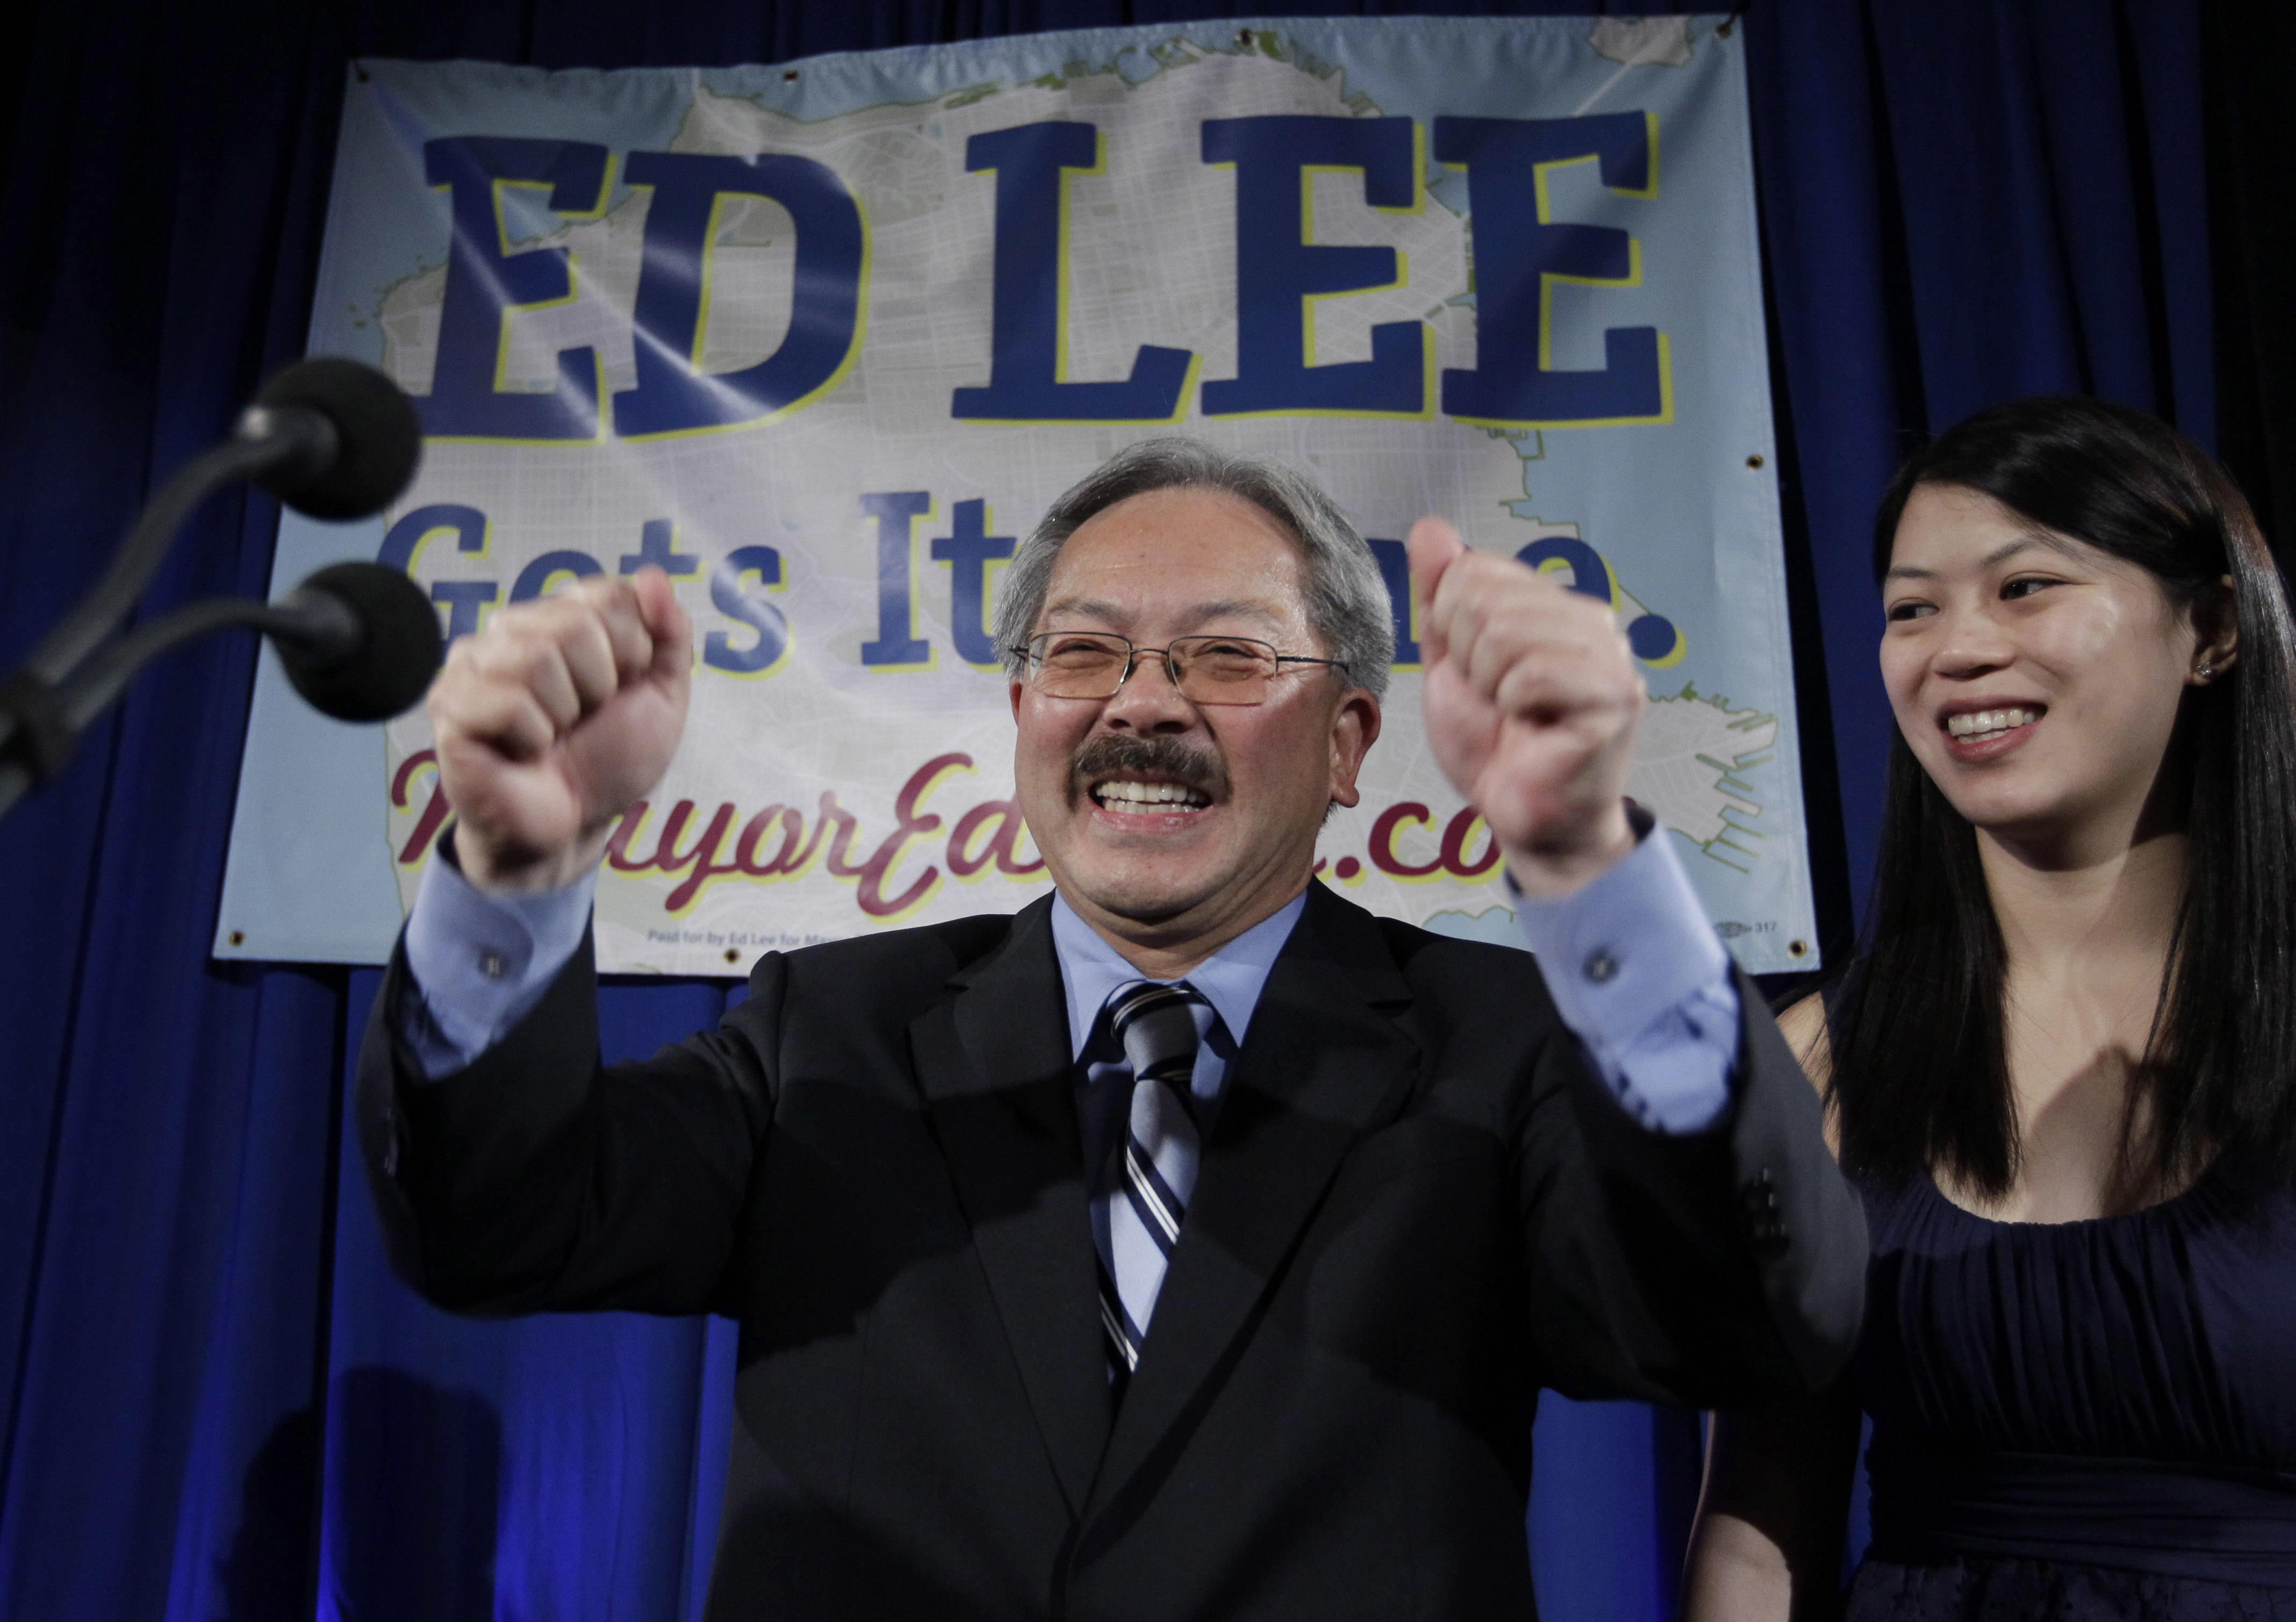 FILE - In this Nov. 8, 2011, file photo, San Francisco interim mayor Ed Lee smiles as his daughter, Brianna, right, looks on at his campaign headquarters for mayor in San Francisco, after the polls closed. The San Francisco Chronicle reported that Lee died early Tuesday, Dec. 12, 2017. He was 65.  (AP Photo/Paul Sakuma, File)